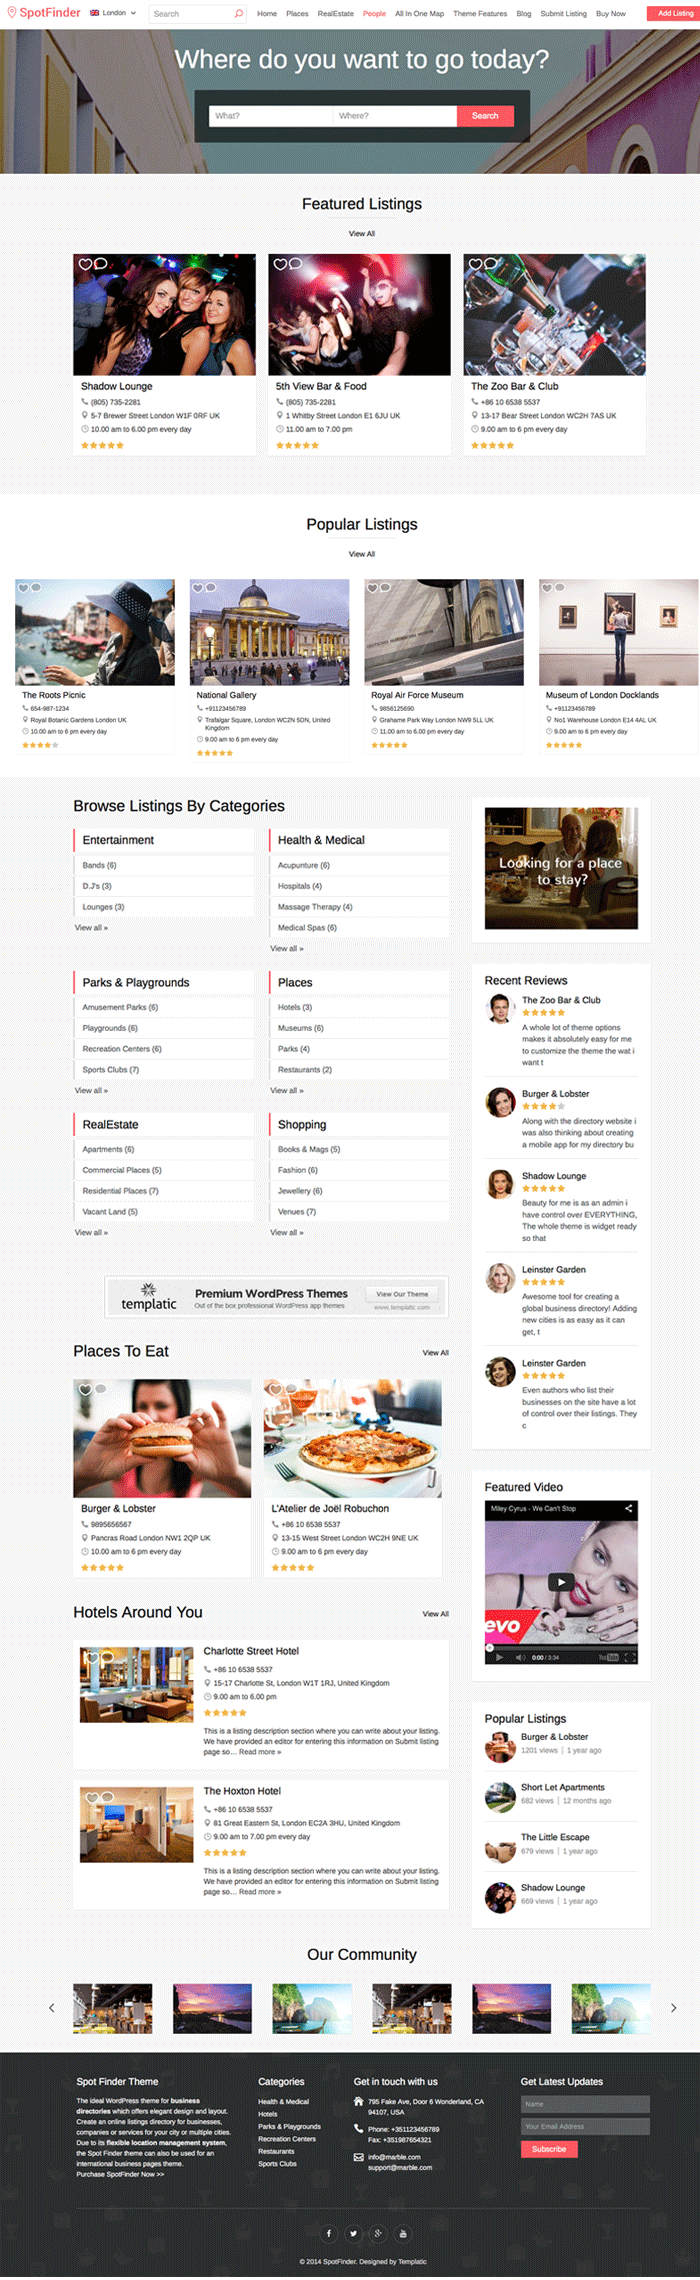 SpotFinder-WordPress-Rental-Lodging-Theme